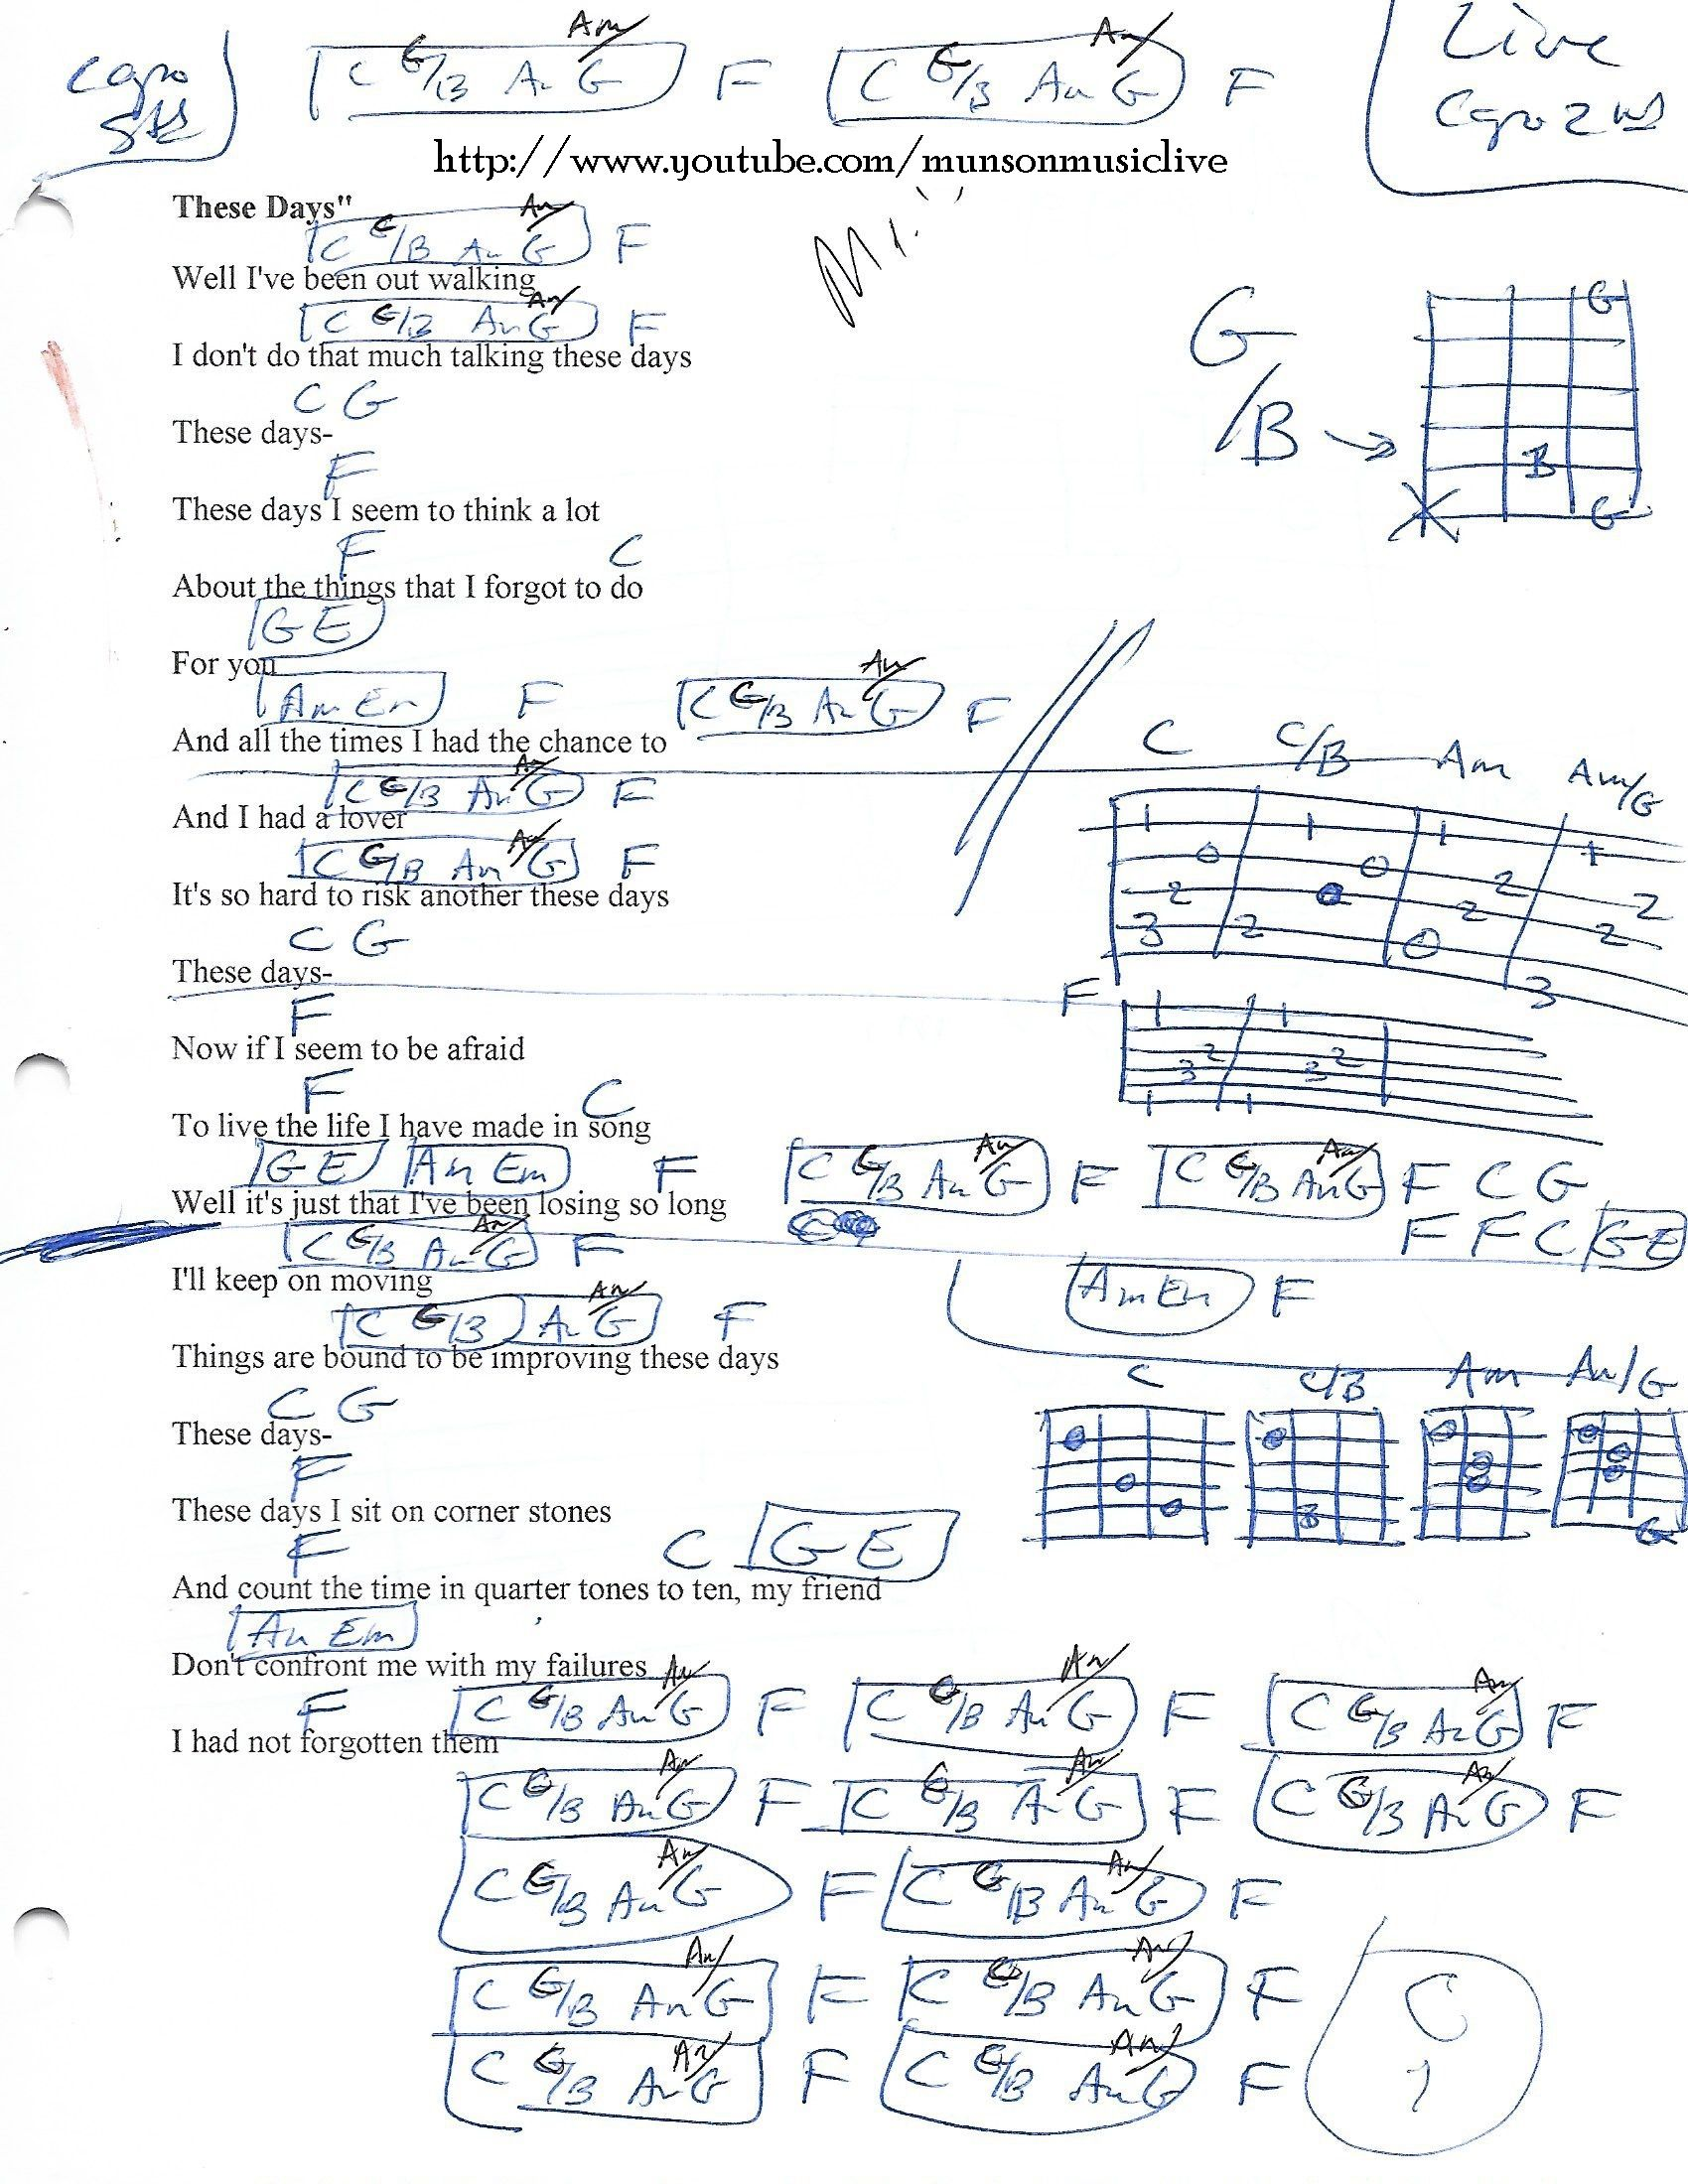 These Days Guitar Chord Chart Guitar Lesson Chord Charts Htttp